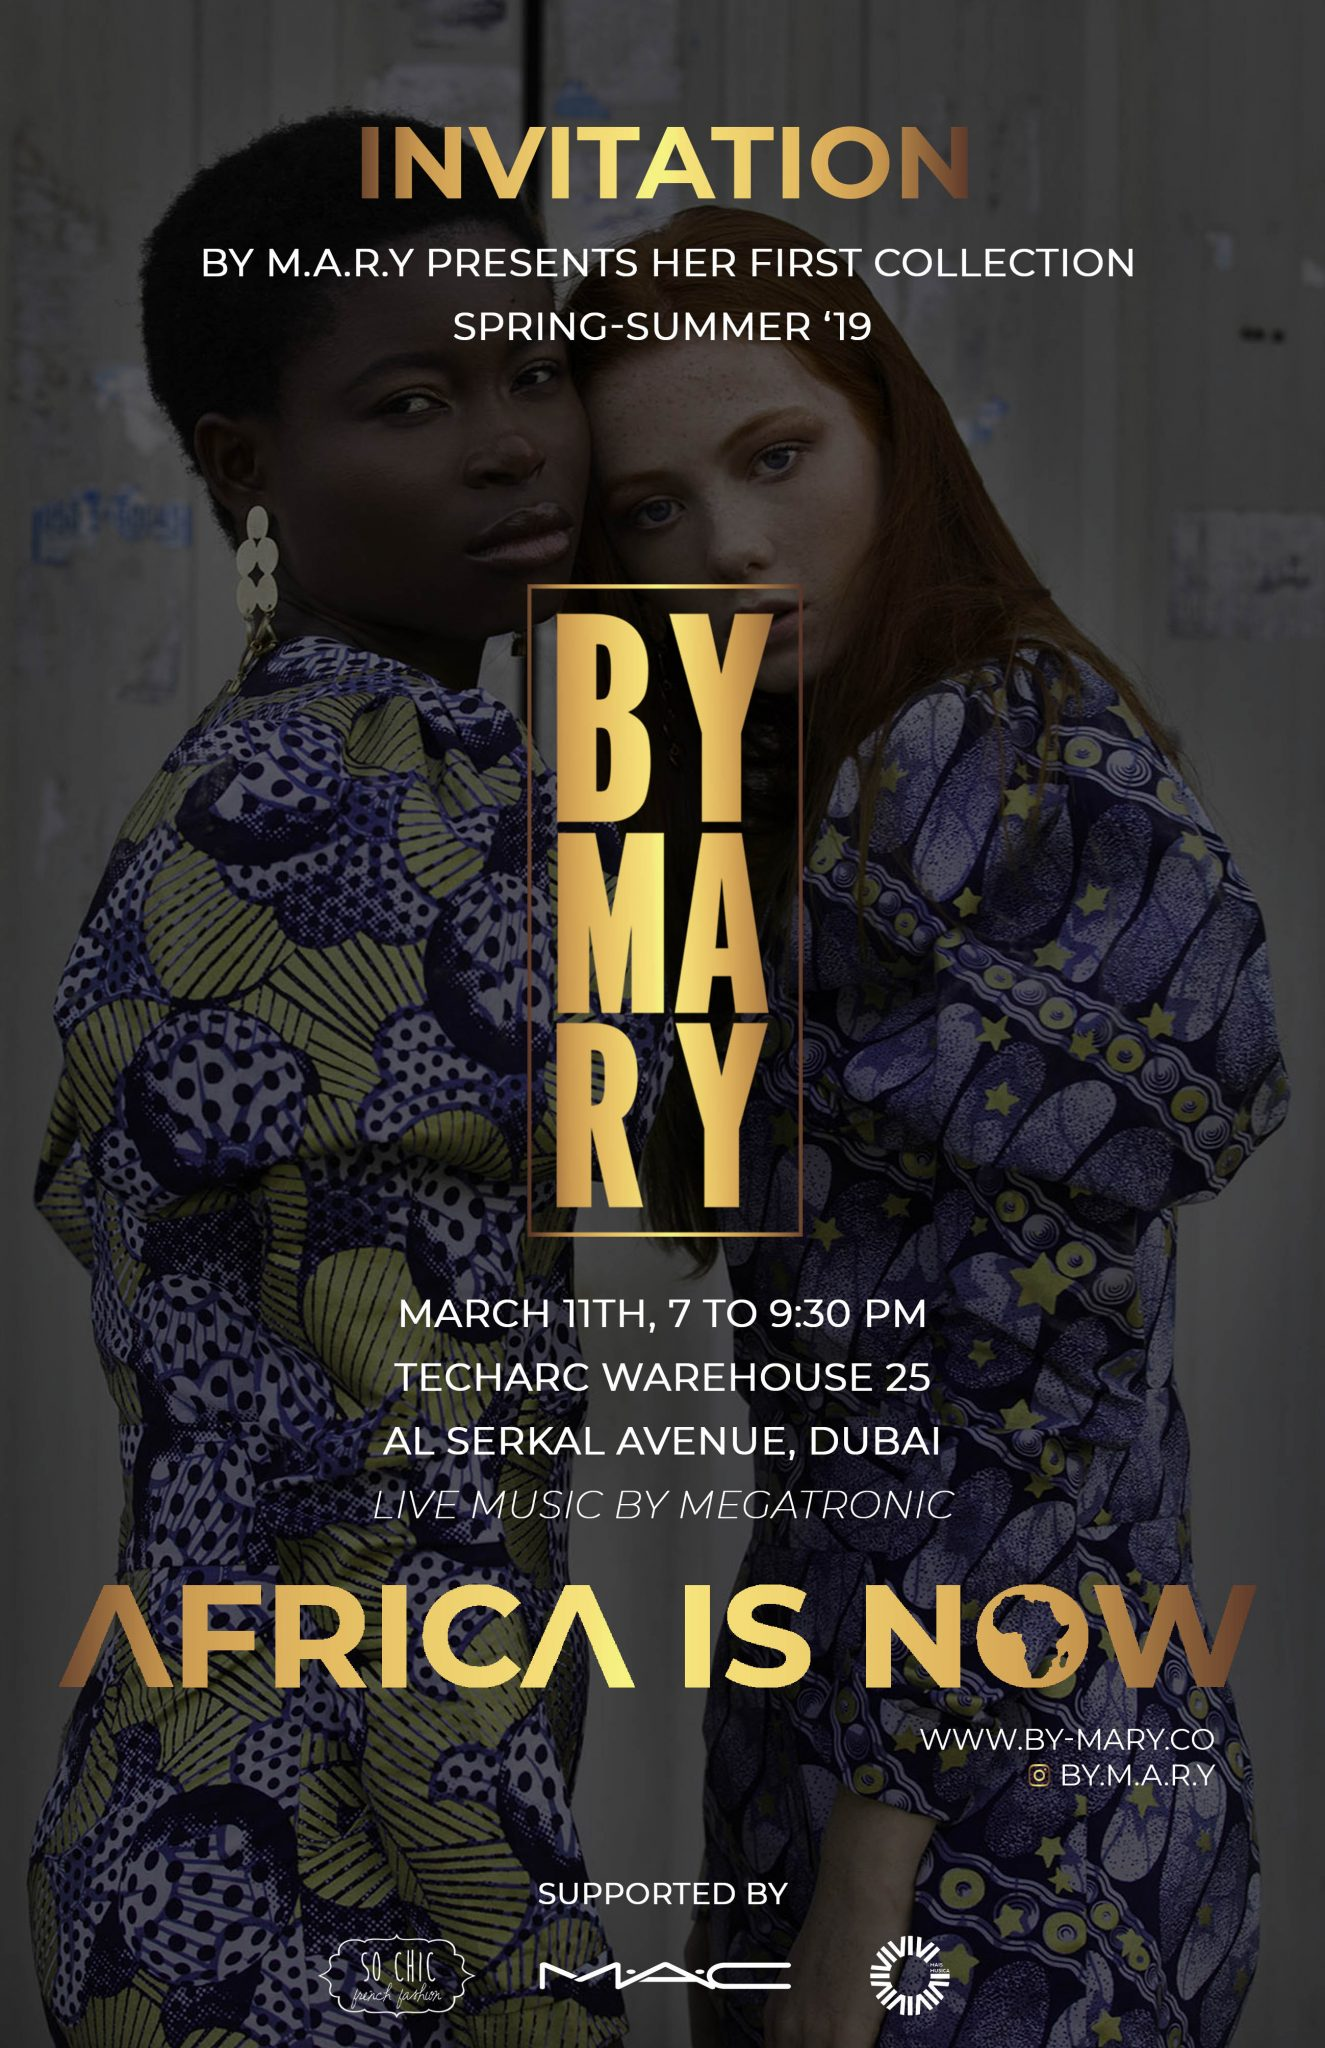 graphic designs for ByMary